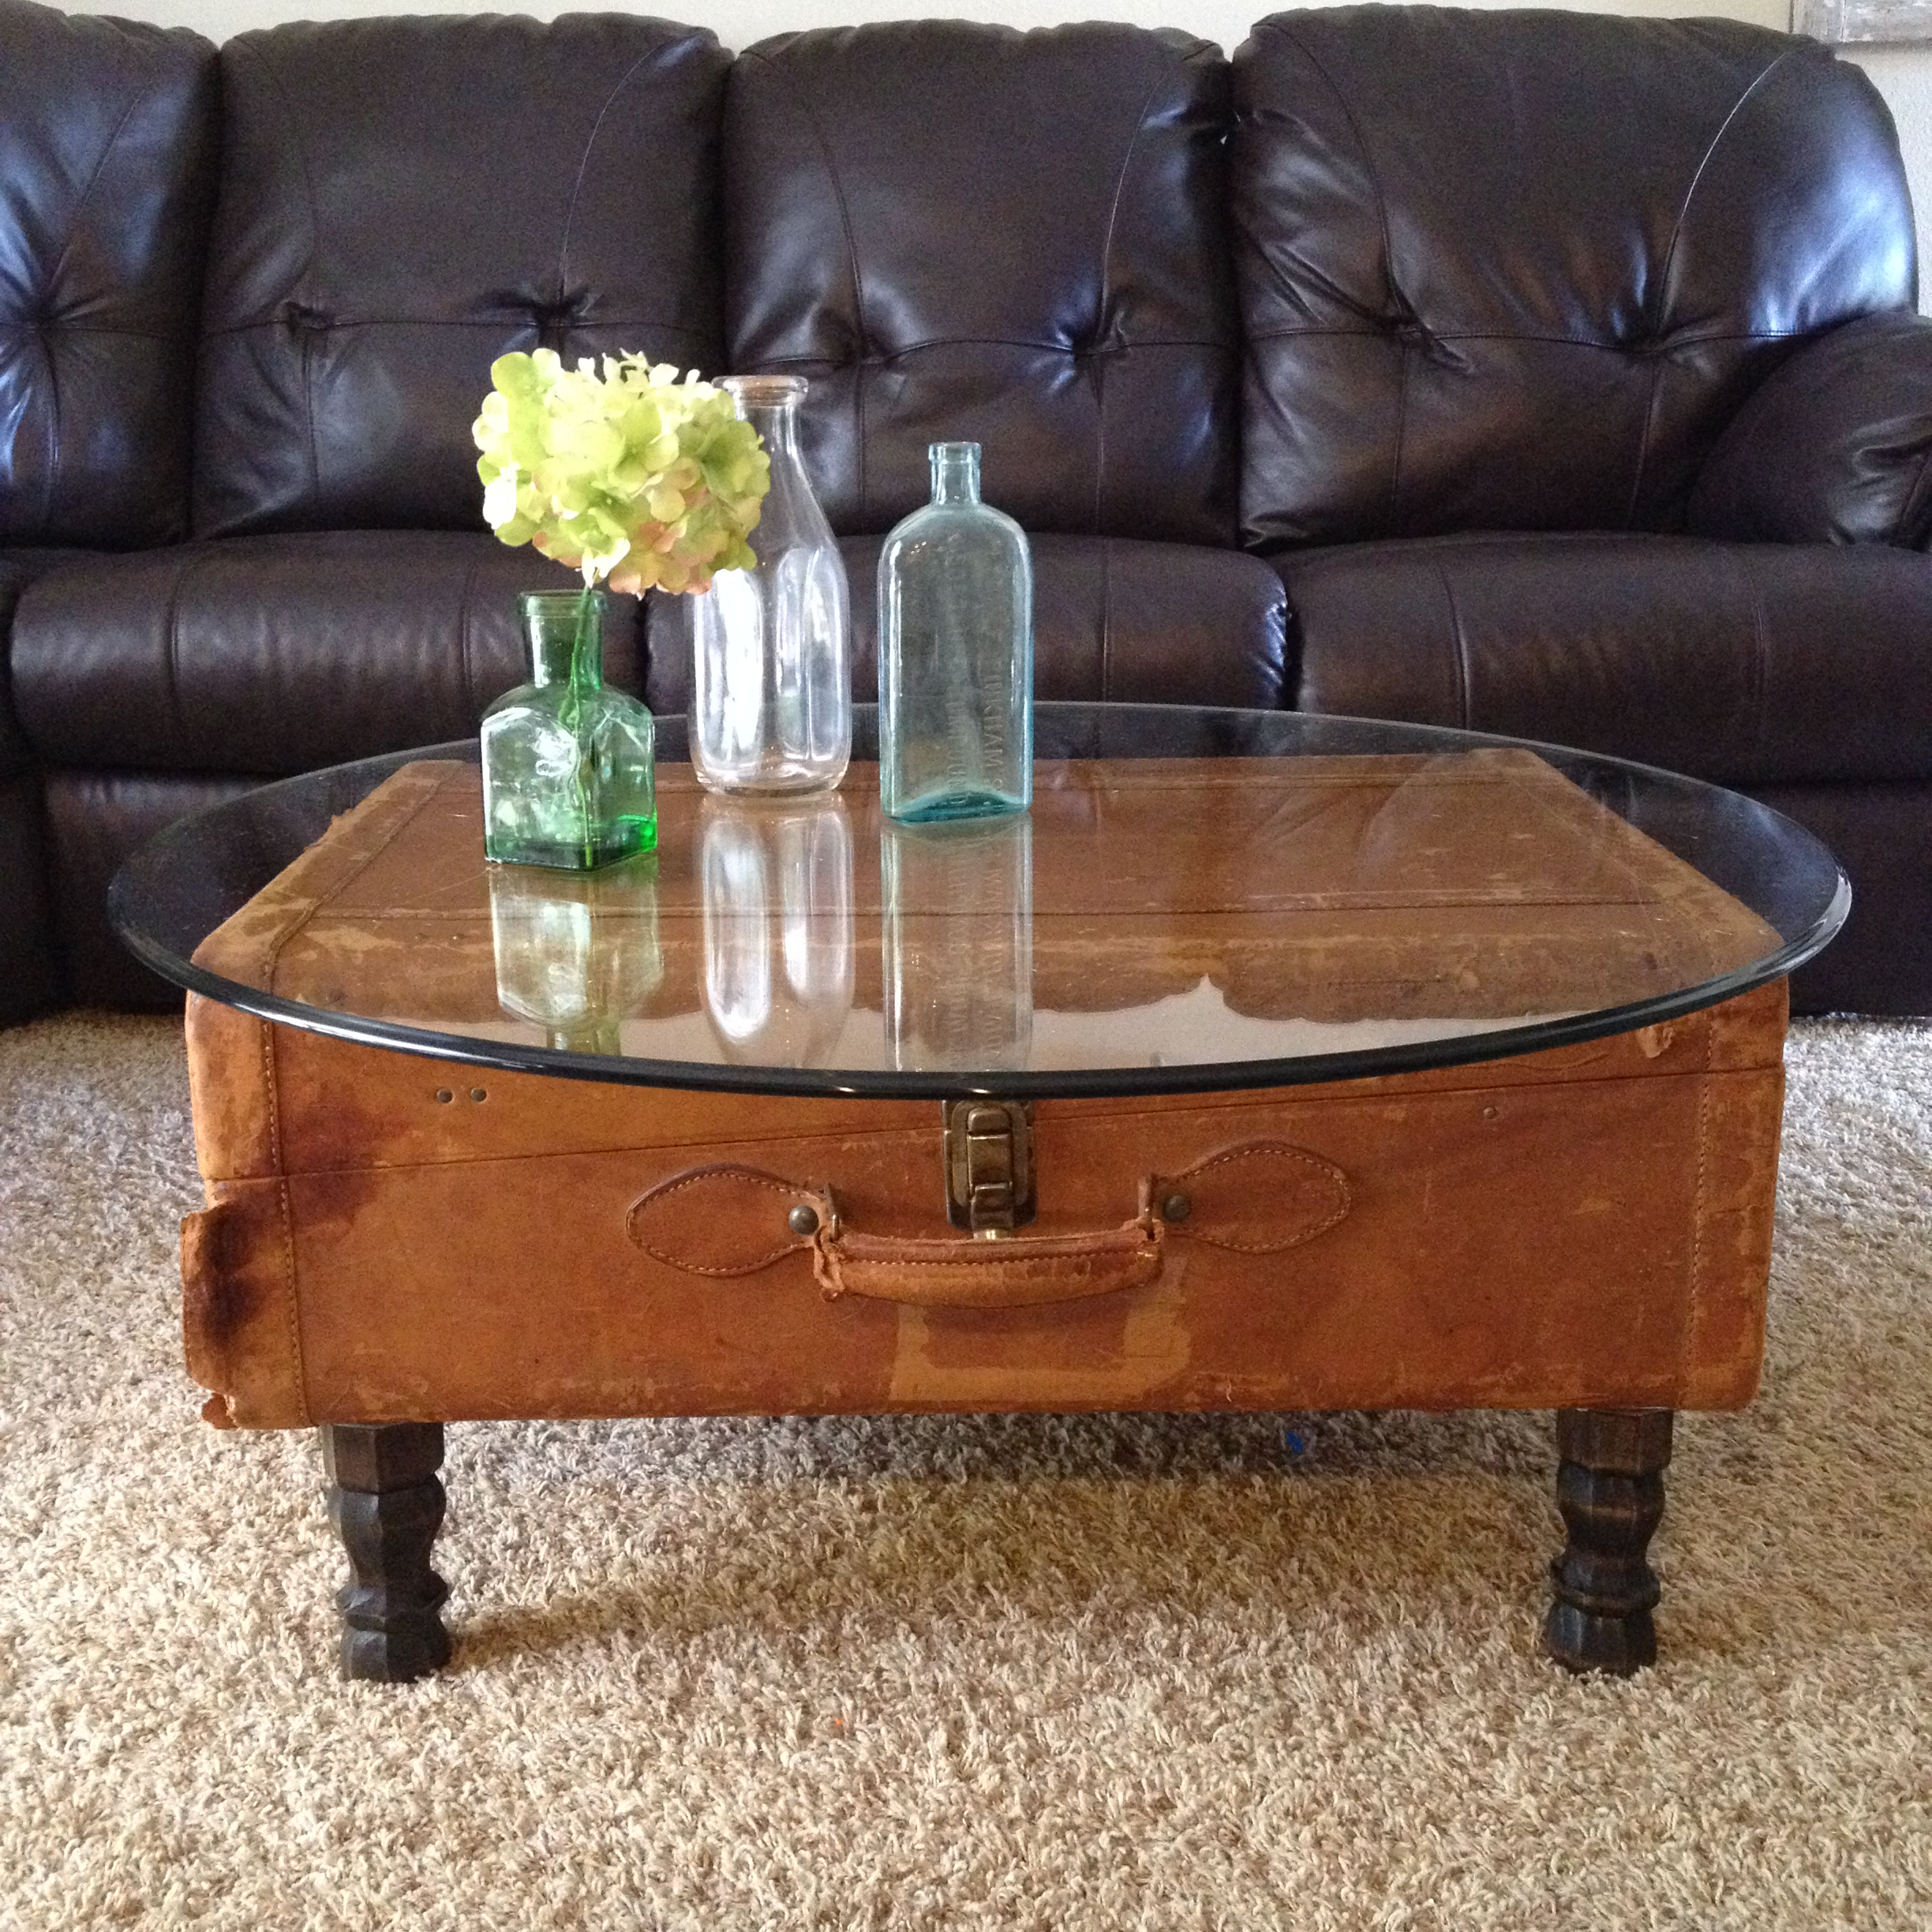 - 33 Antique DIY Coffee Table Ideas Table Decorating Ideas